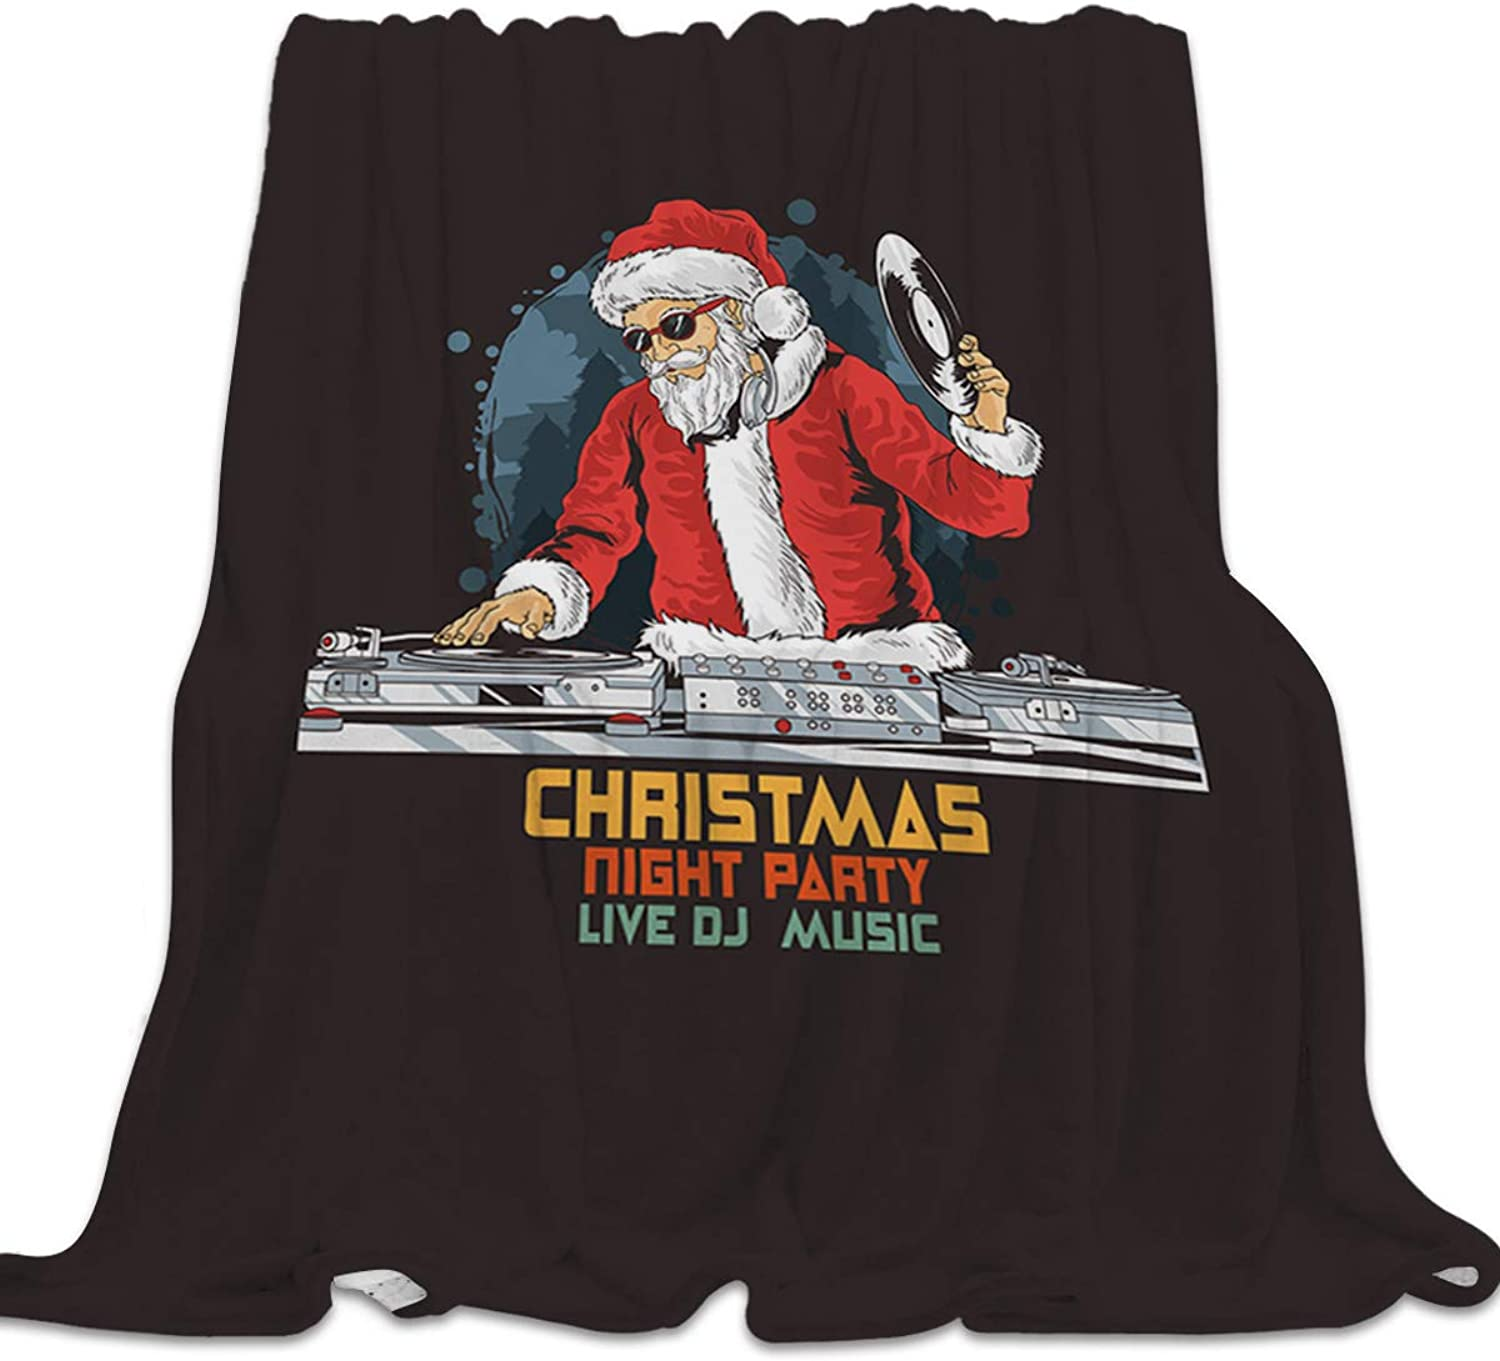 Clouday Flannel Fleece Bed Blanket Soft Throw-Blankets for Kids Girls Boys,DJ Santa Claus Merry Christmas,Lightweight Blankets for Bedroom Living Room Sofa Couch Home Decor,39x49Inch